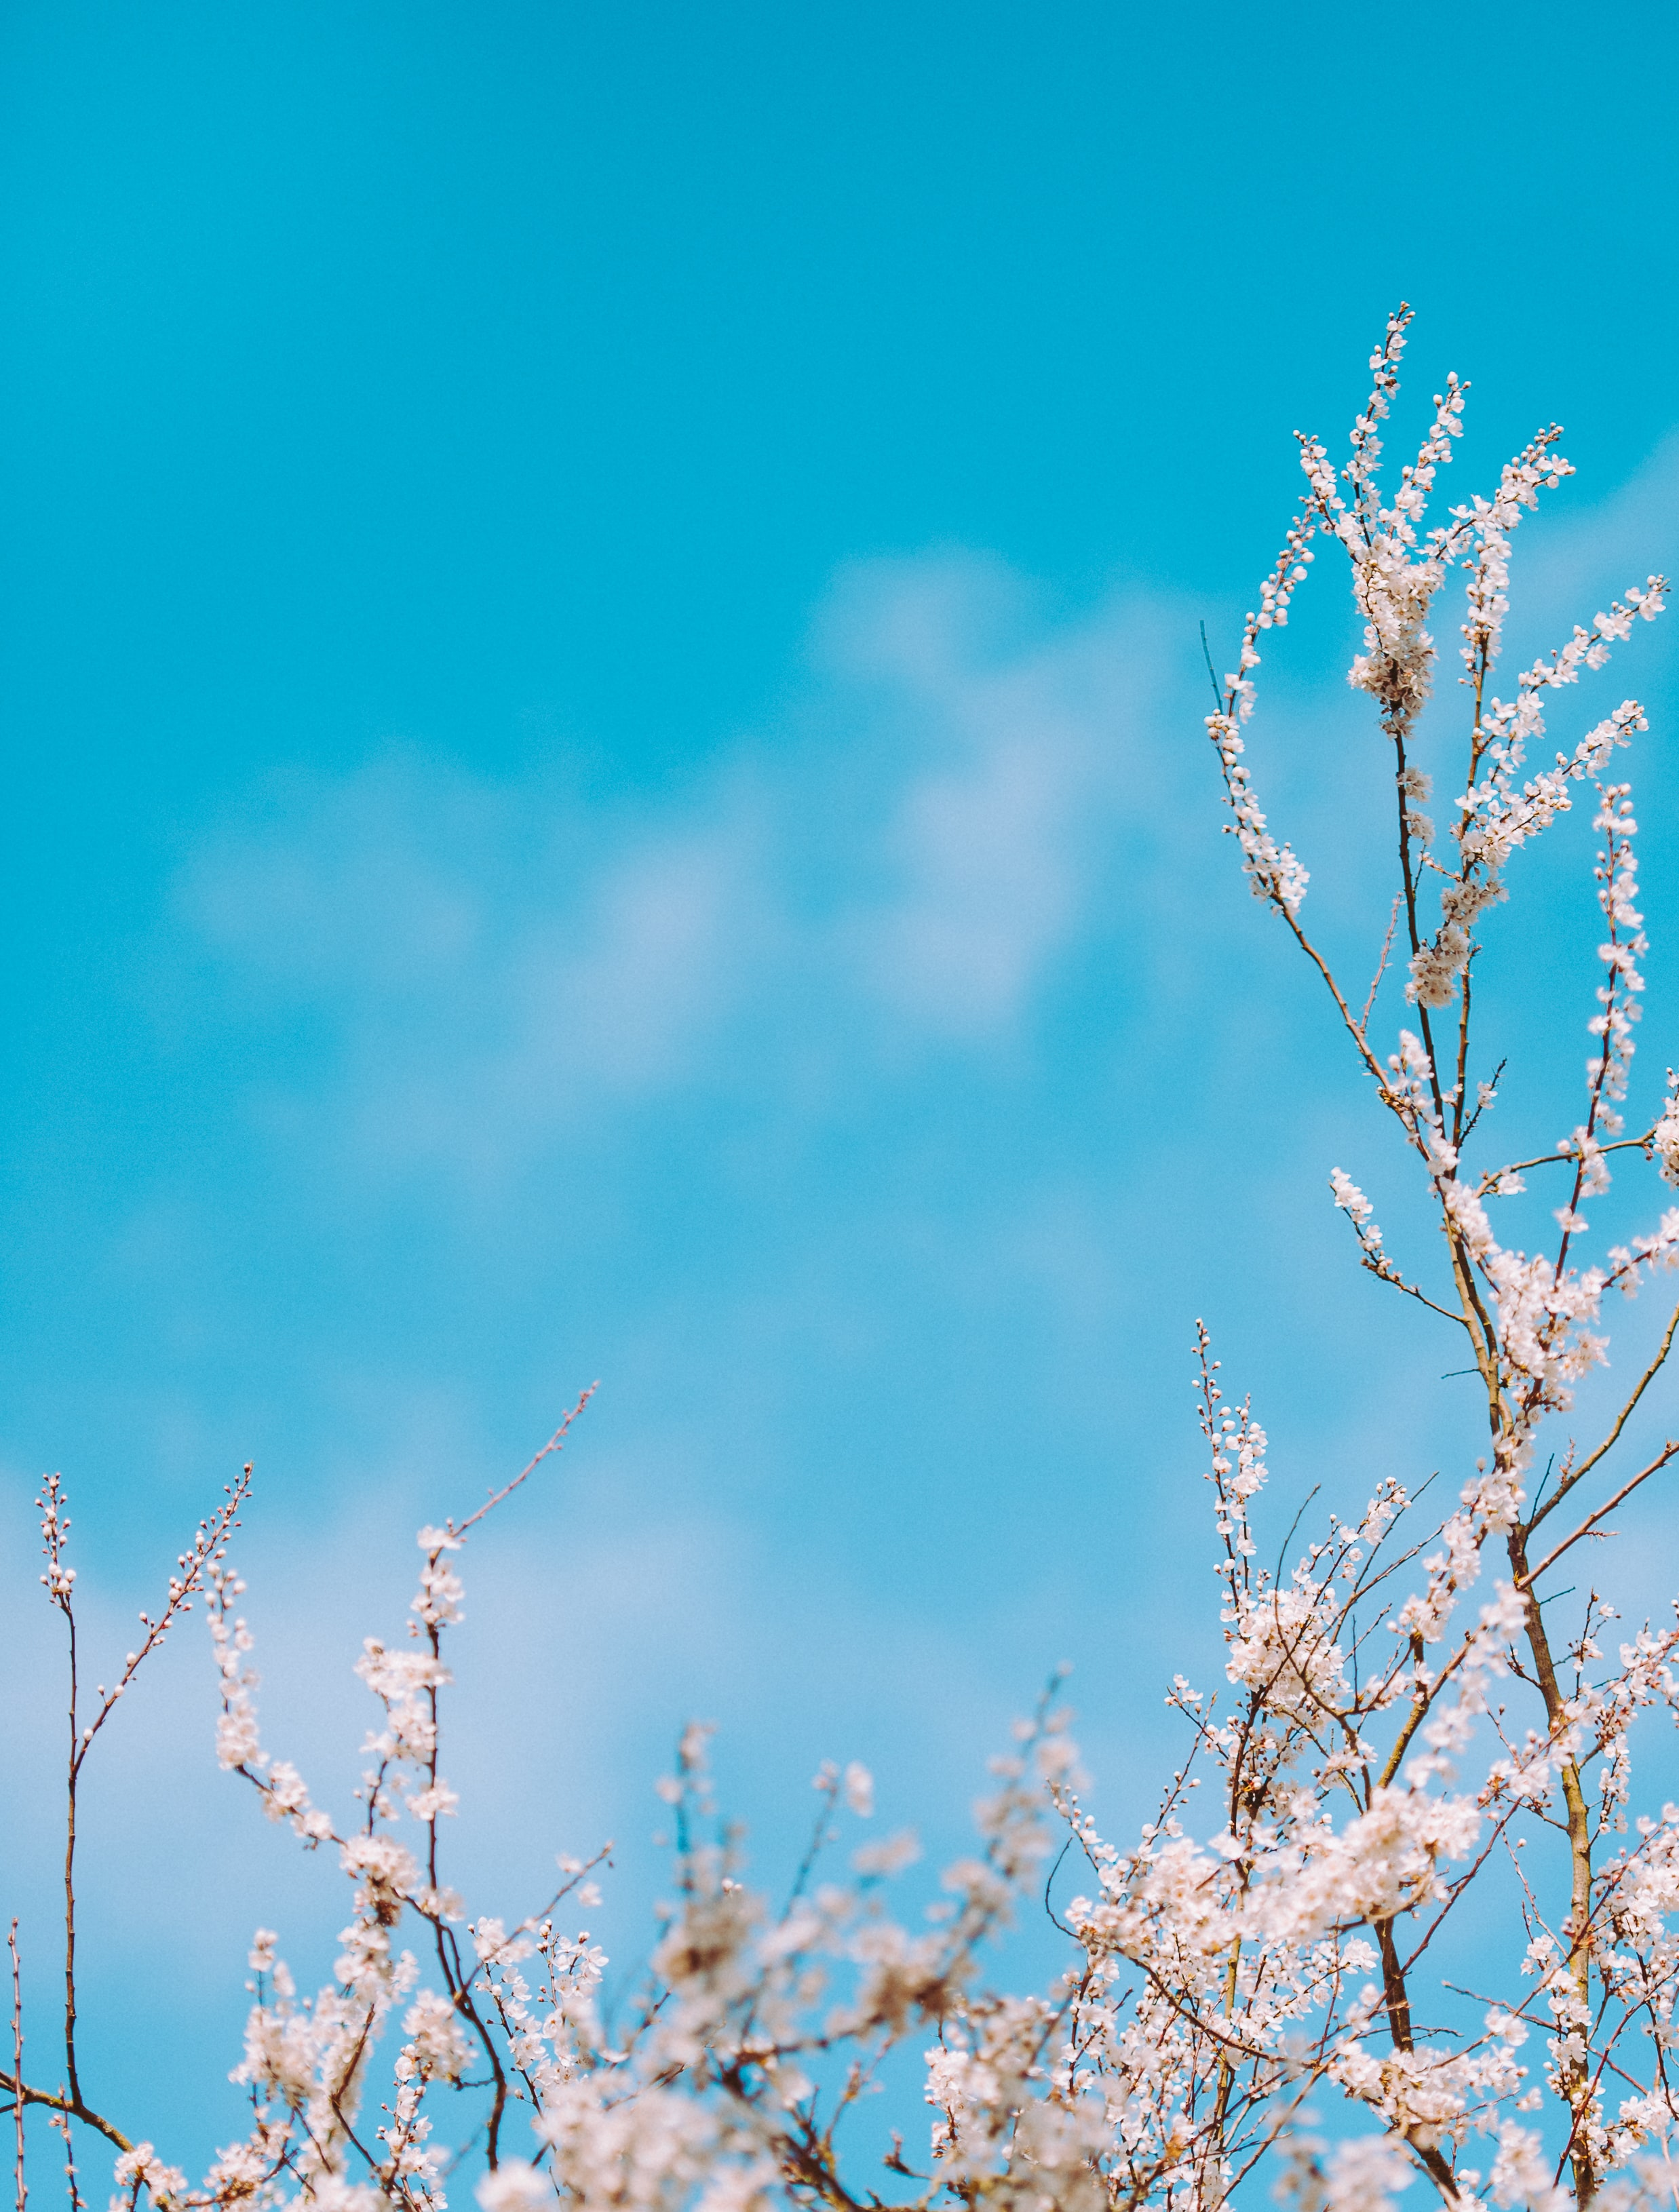 Branches with white blossom with blue sky background in Spring